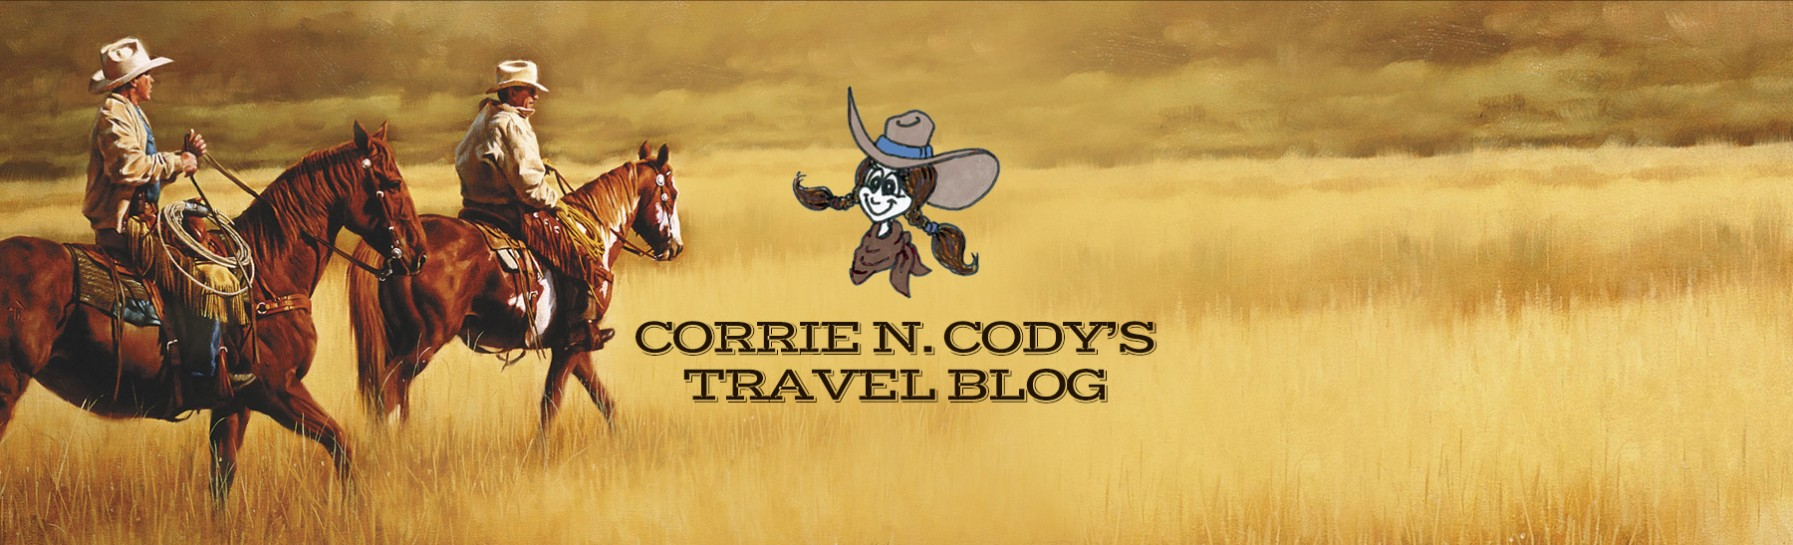 Corrie n. Cody's Travel Blog